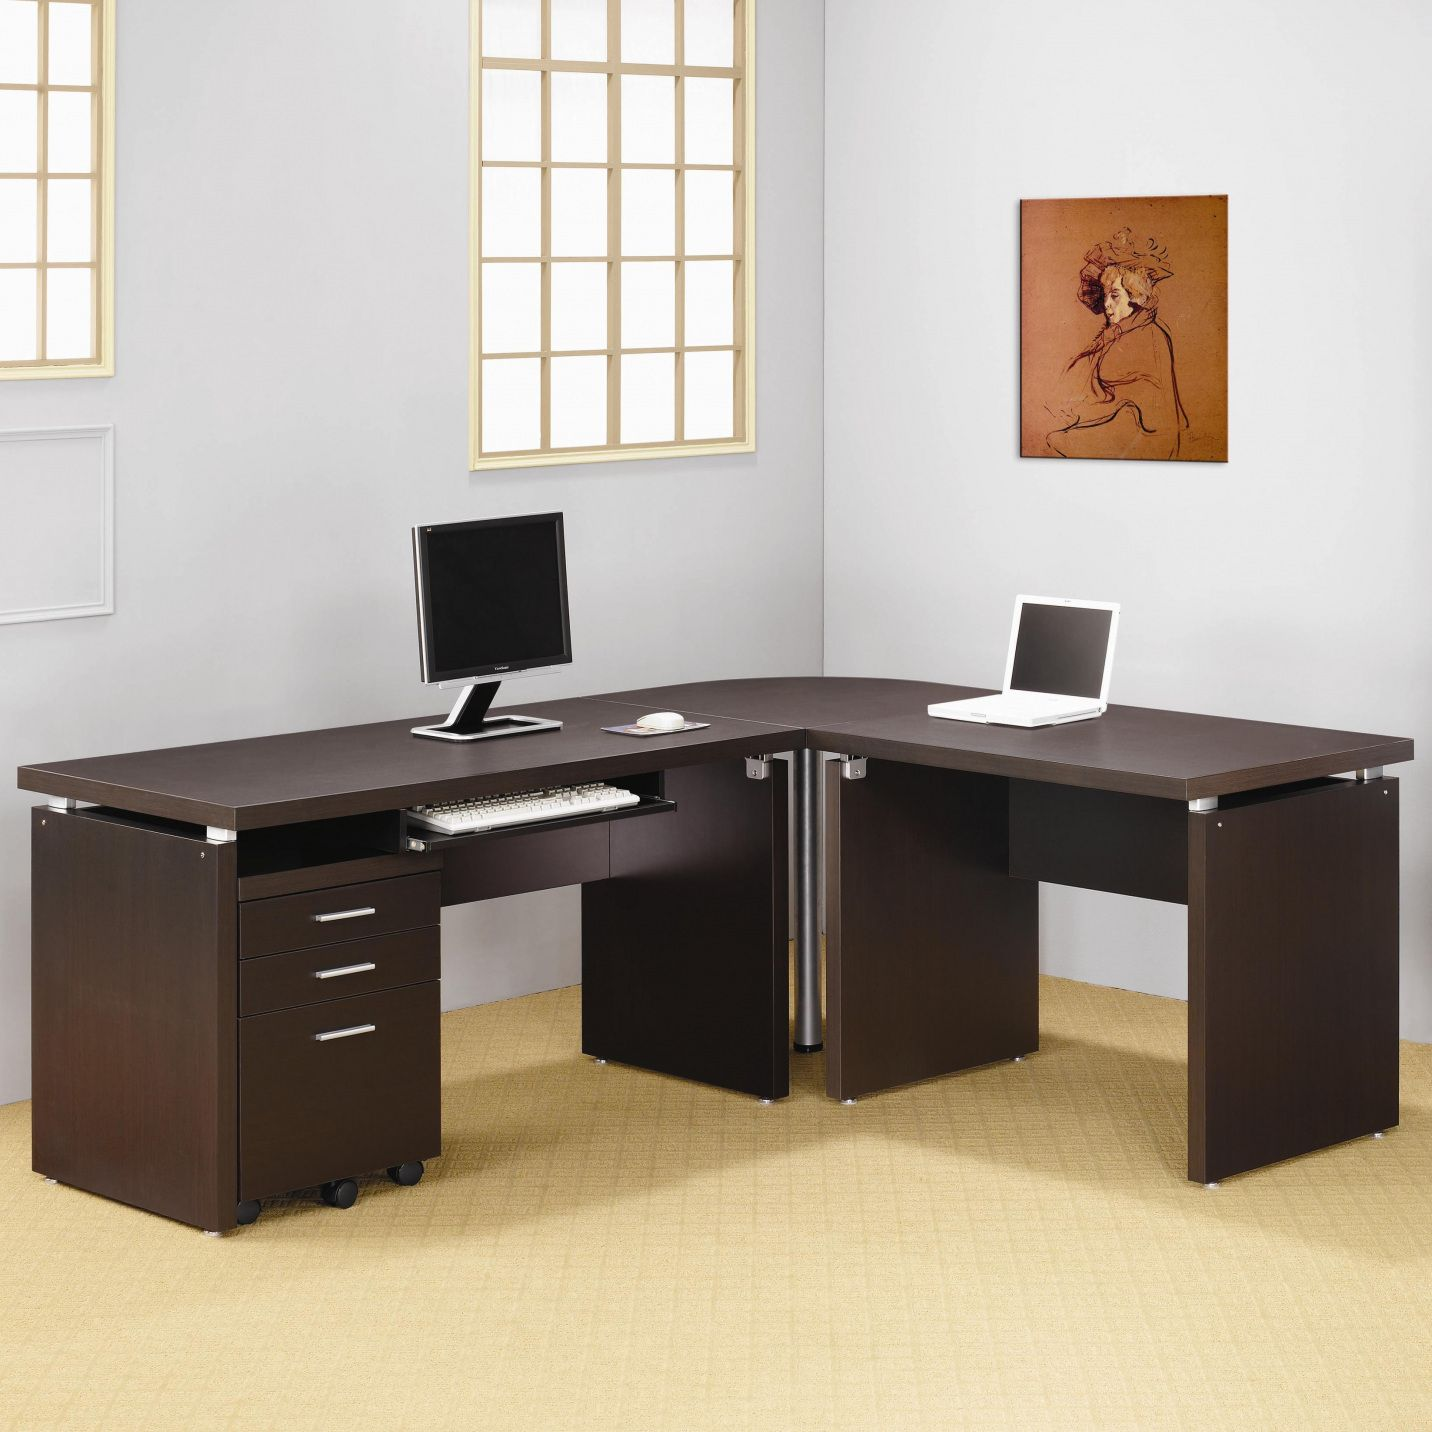 Office Depot Desk Sets Country Home Furniture Check More At Http